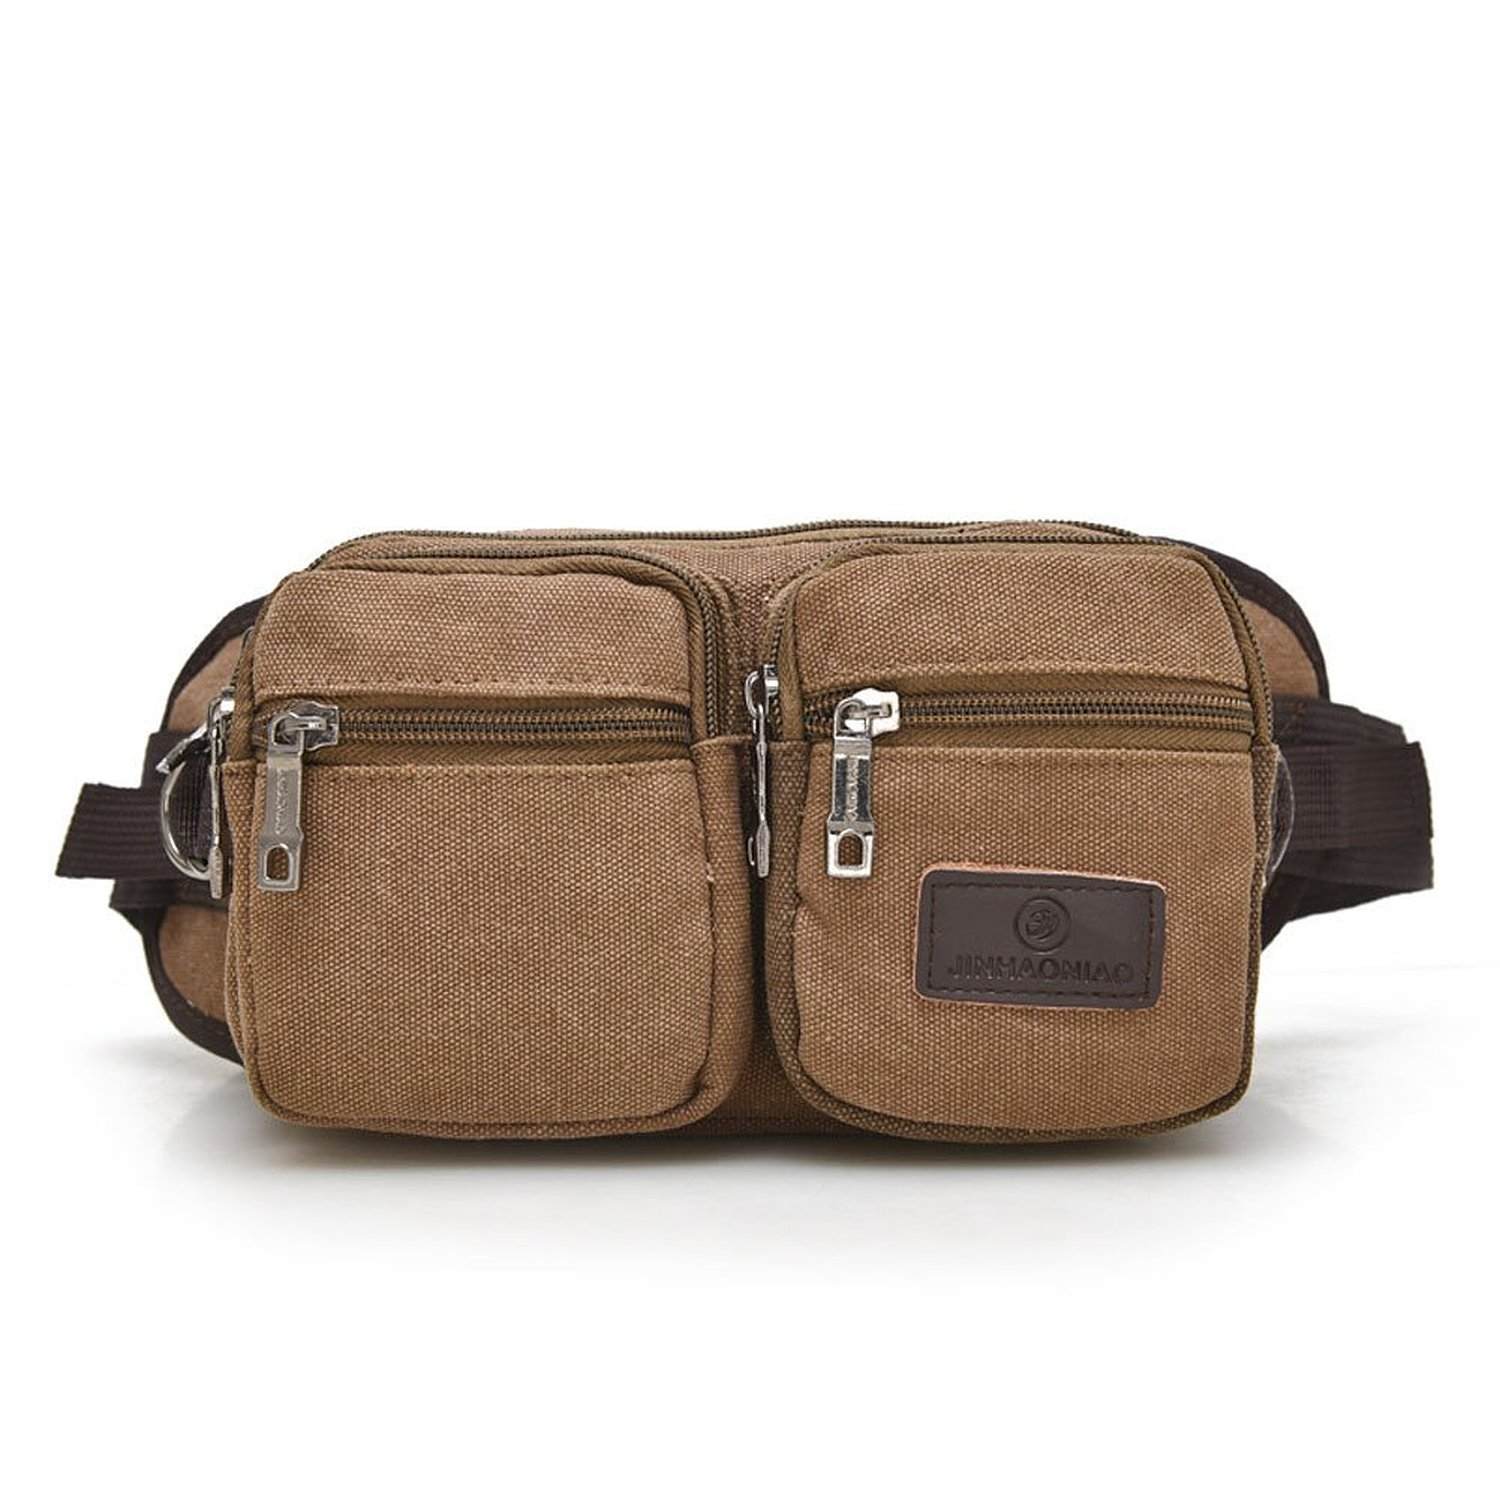 Mens Canvas OutDoor Sports Travel Fanny Waist Packs Hip Bum Bags